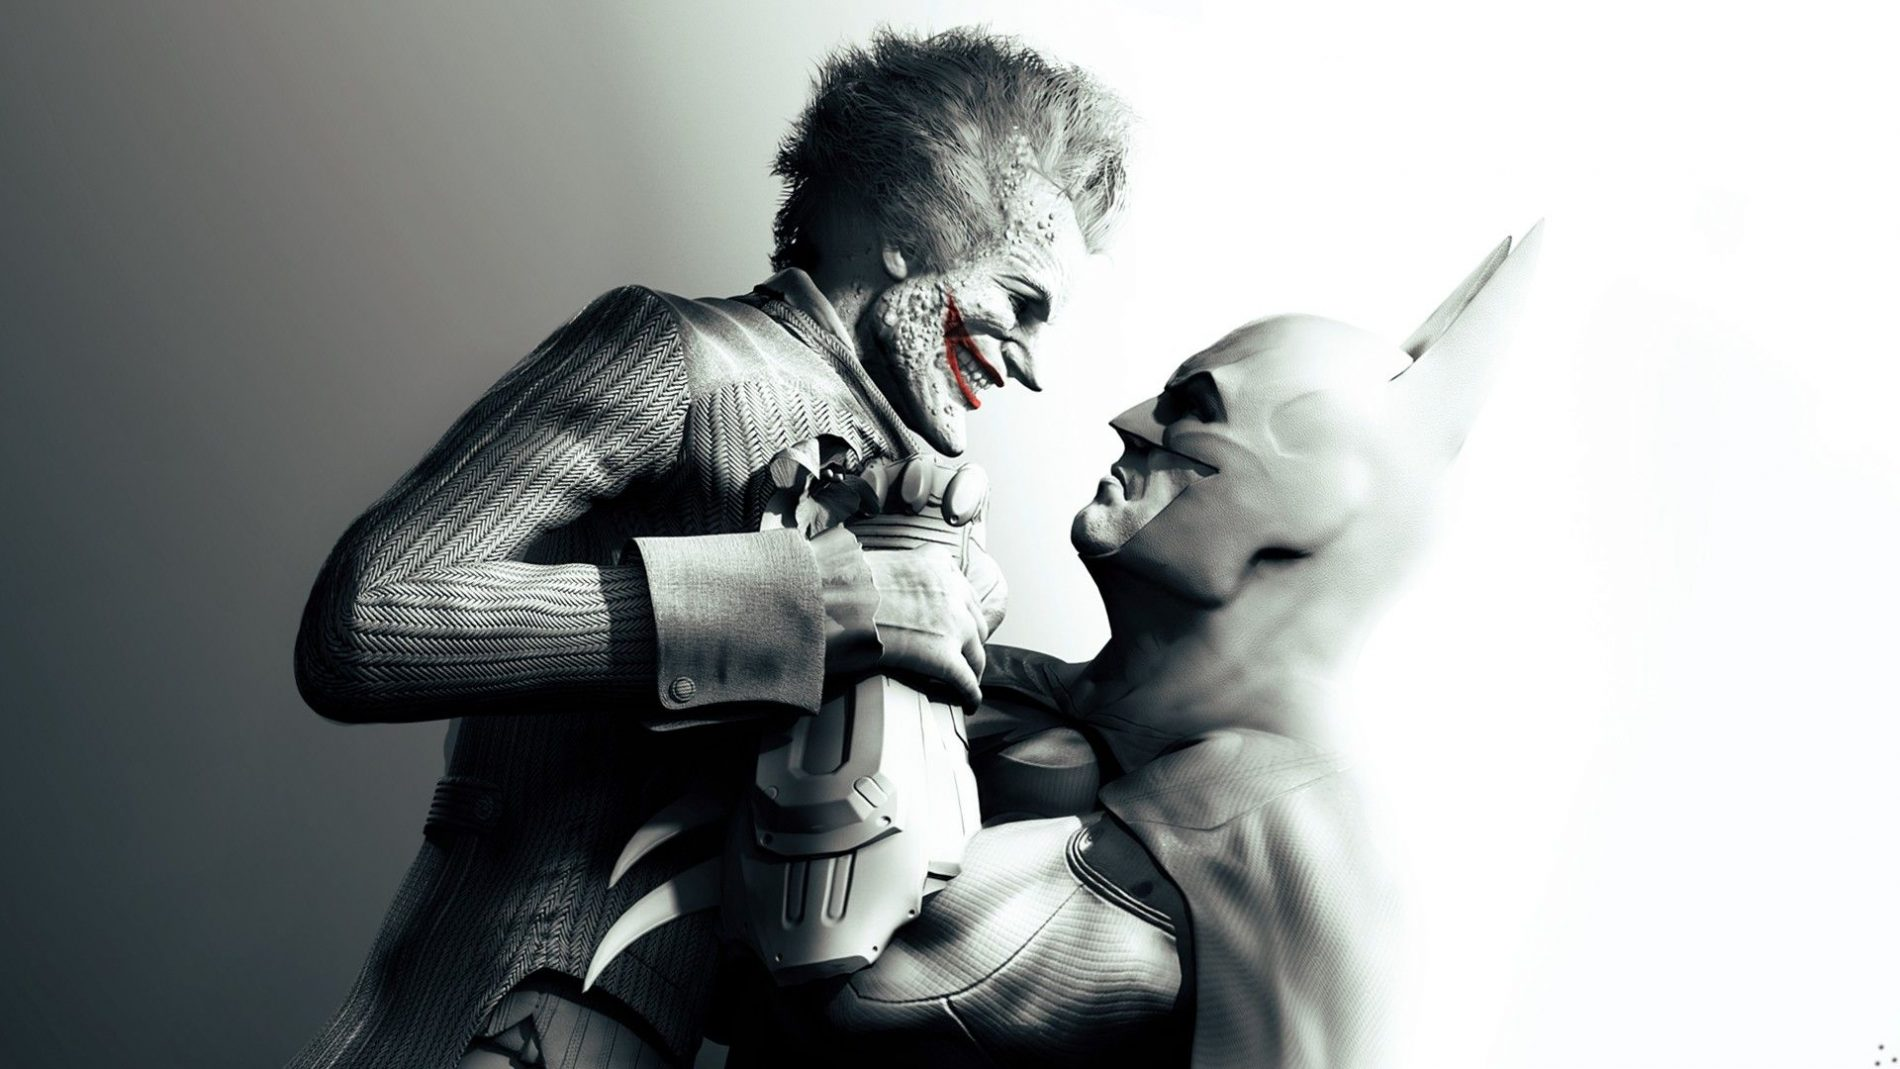 Batman Arkham: Insurgency